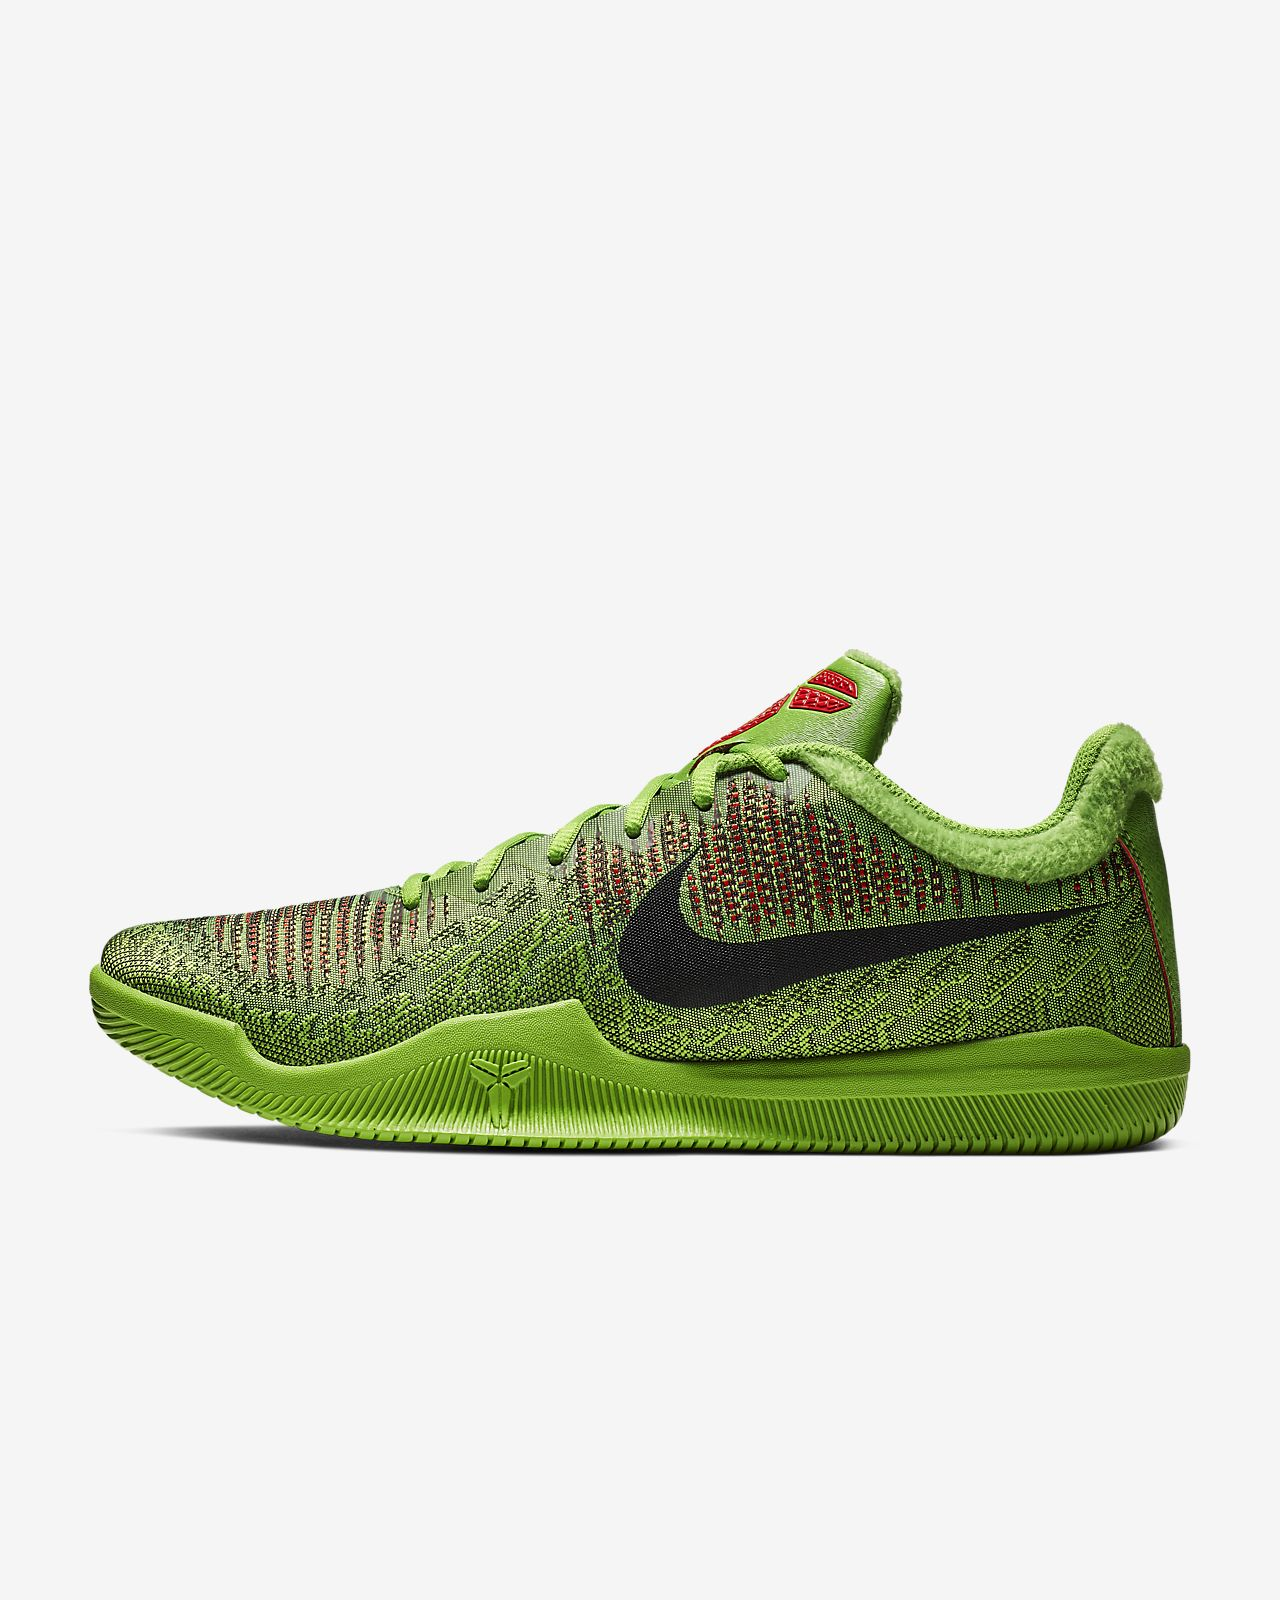 Mamba Homme Rage Basketball Fr Pour Chaussure Nike De Oqpwpta